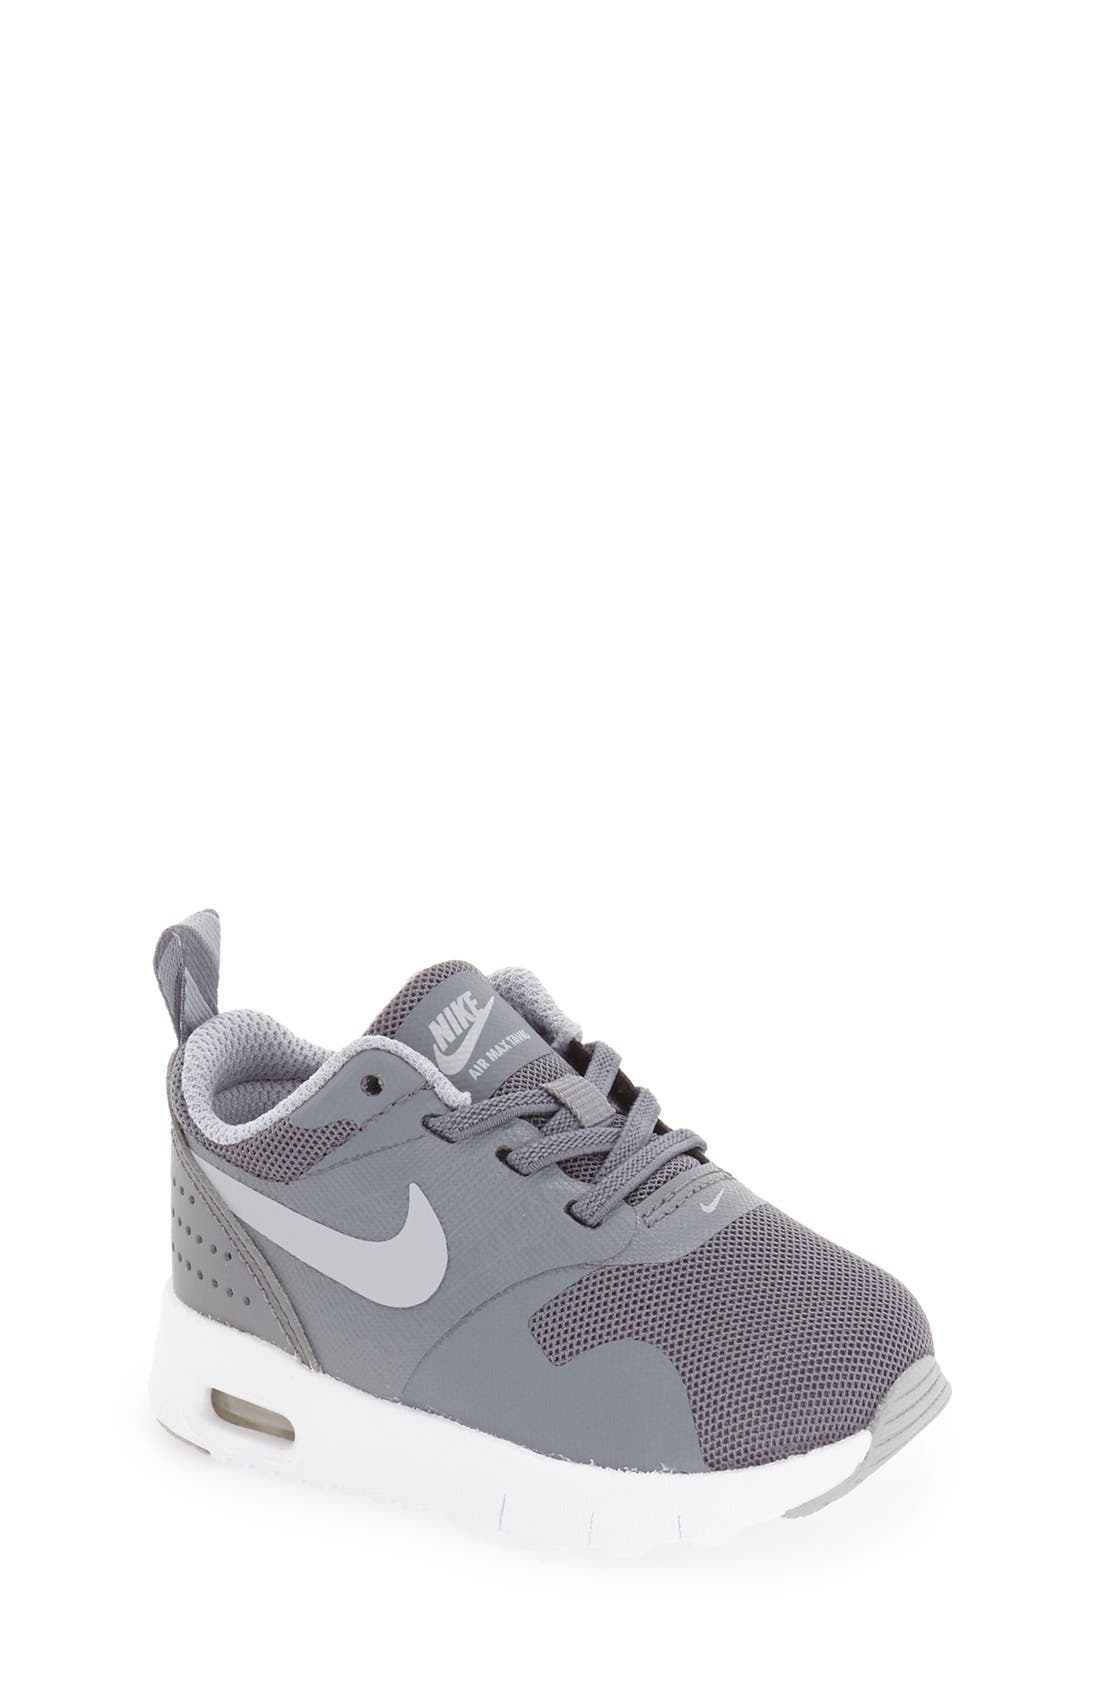 Alternate Image 1 Selected - Nike Air Max Tavas Sneaker (Walker, Toddler & Little Kid)